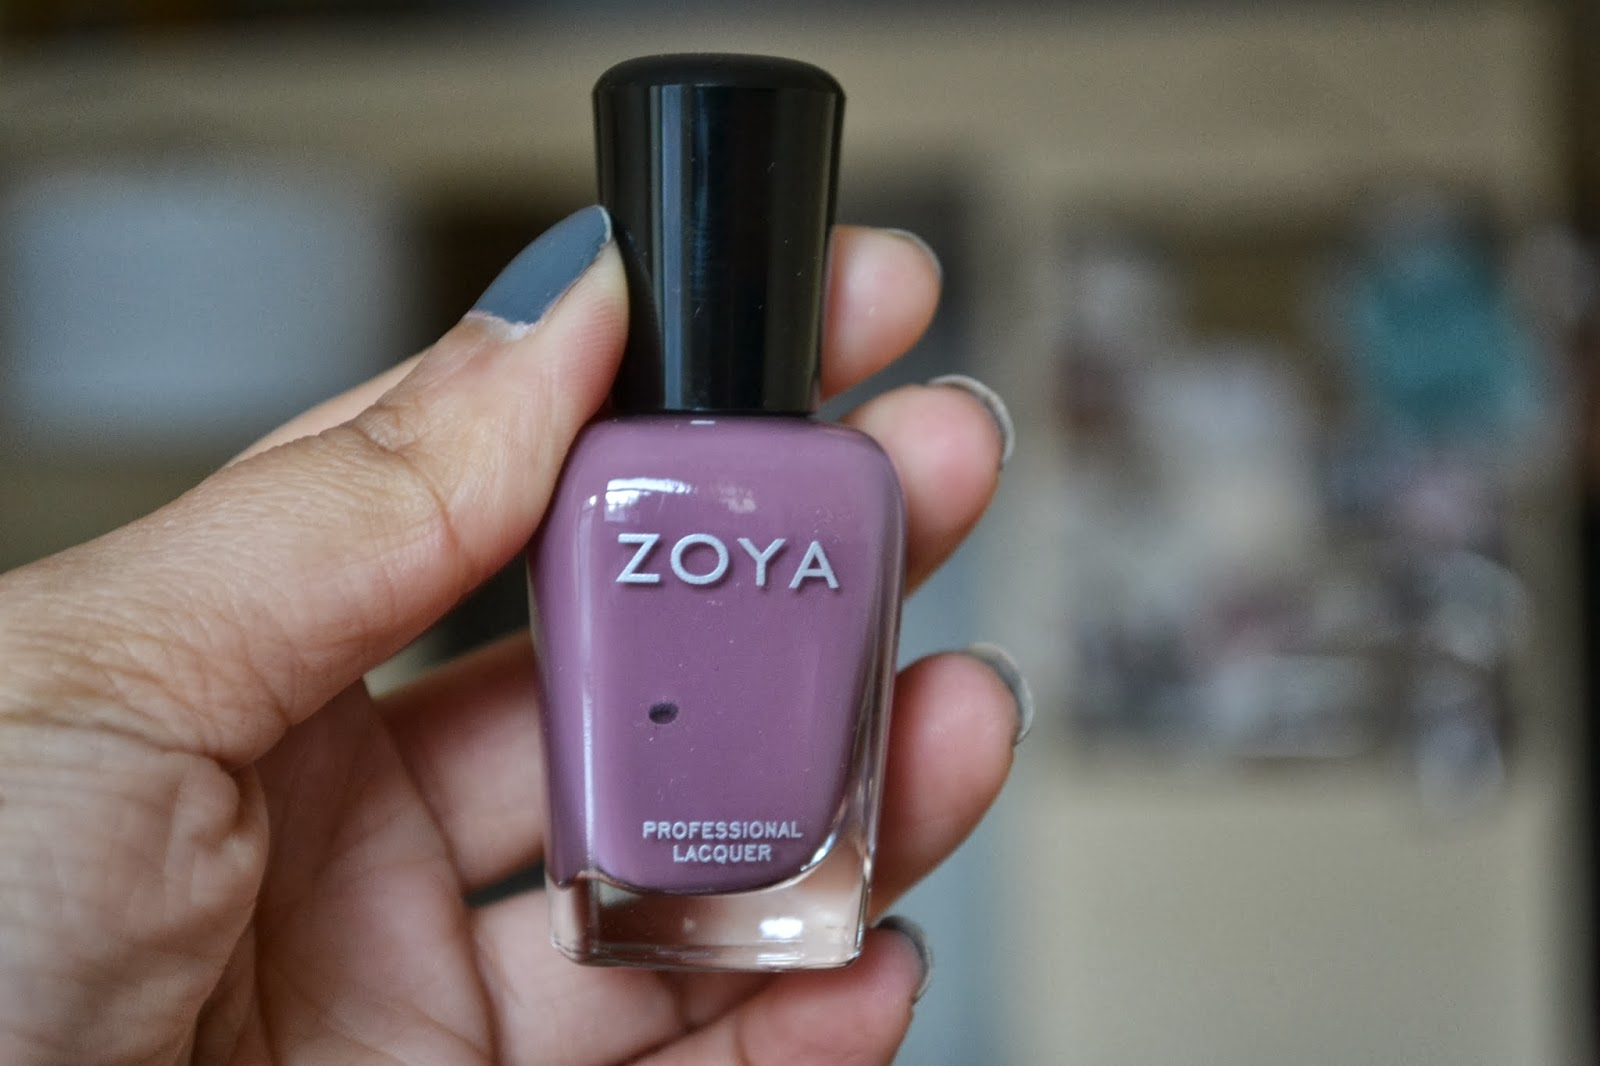 Zoya nail polish in the shade Odette